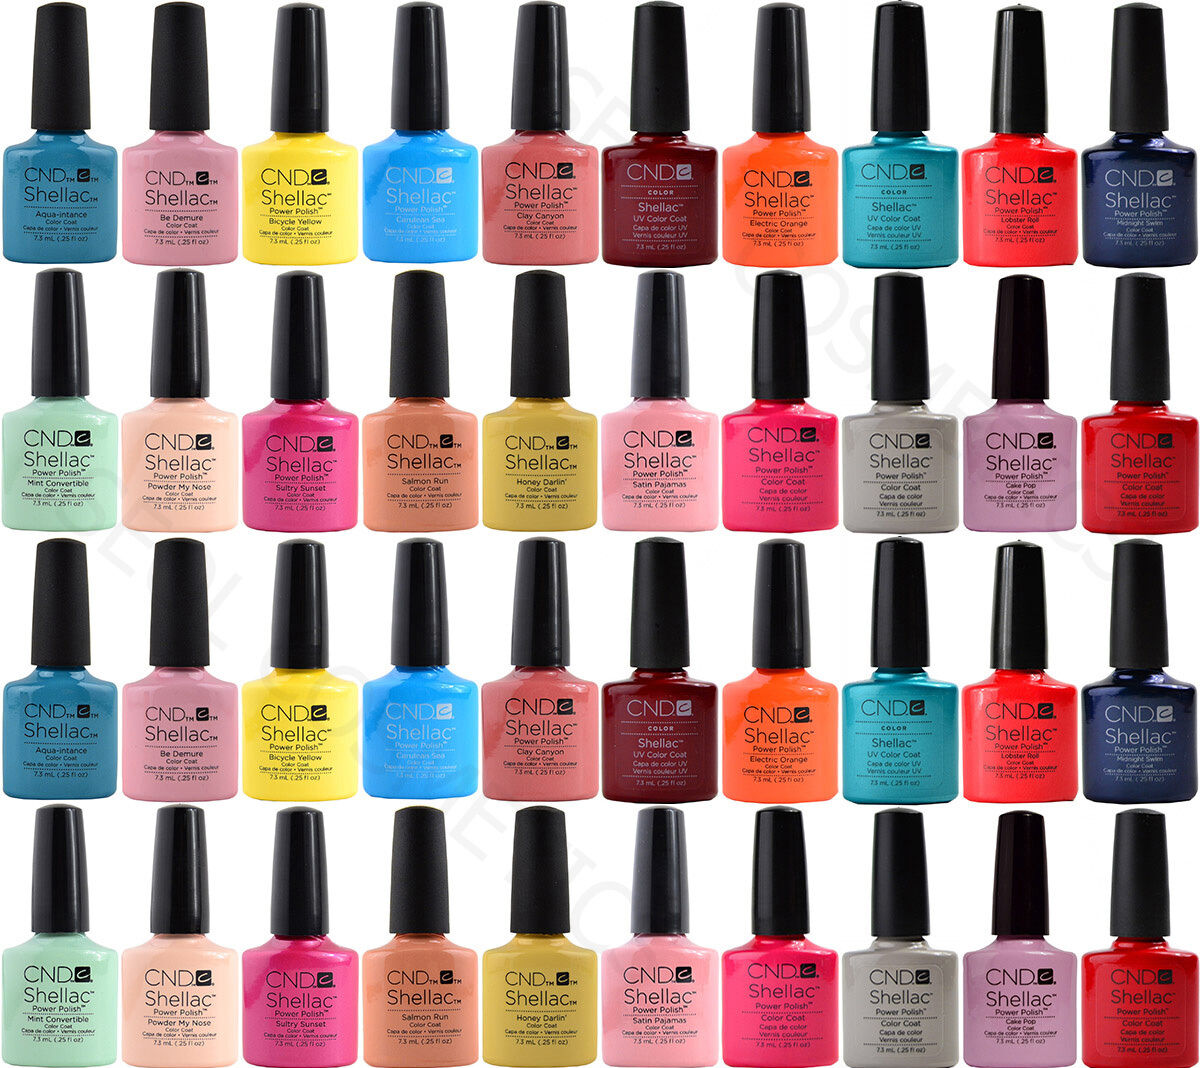 Cnd shellac uv led smalti tutti i colori disponibili top base 7 3ml 12 5ml 15ml 